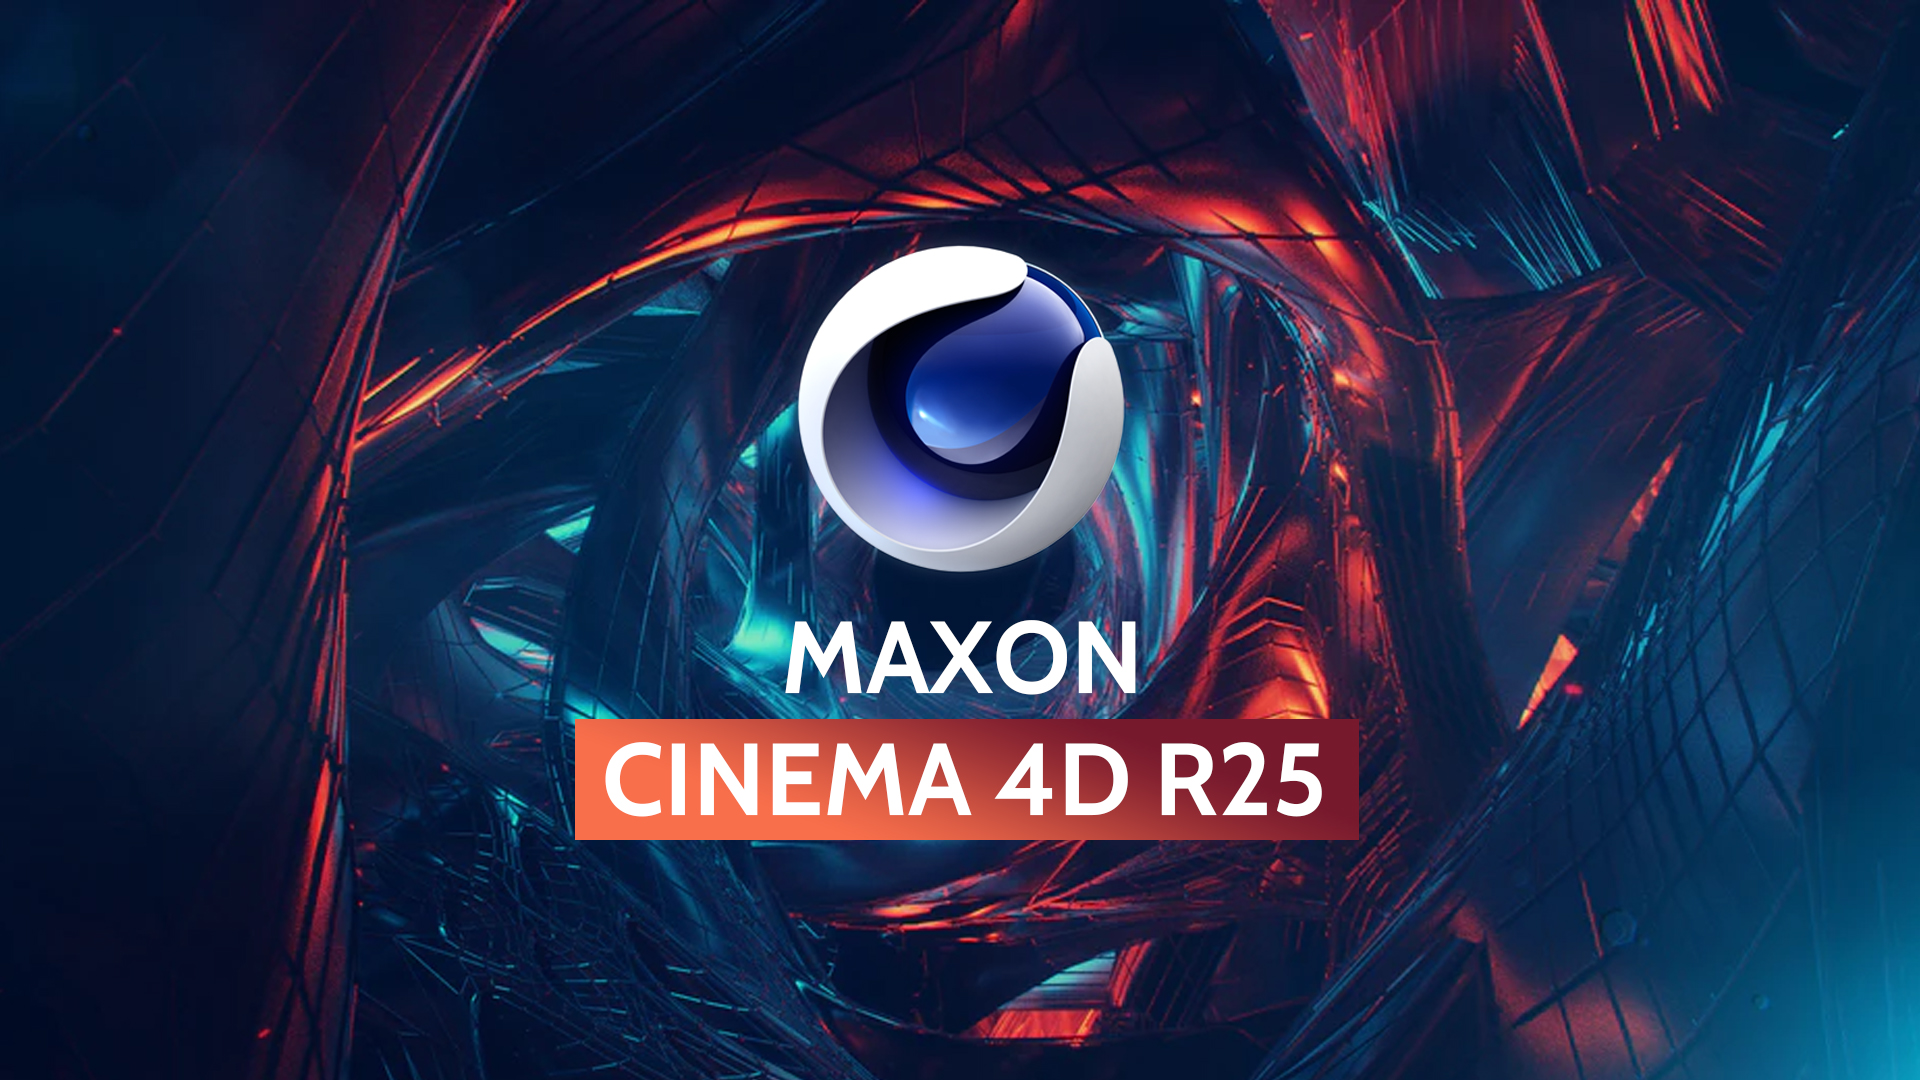 New Release: Cinema 4D R25 Introduced by Maxon